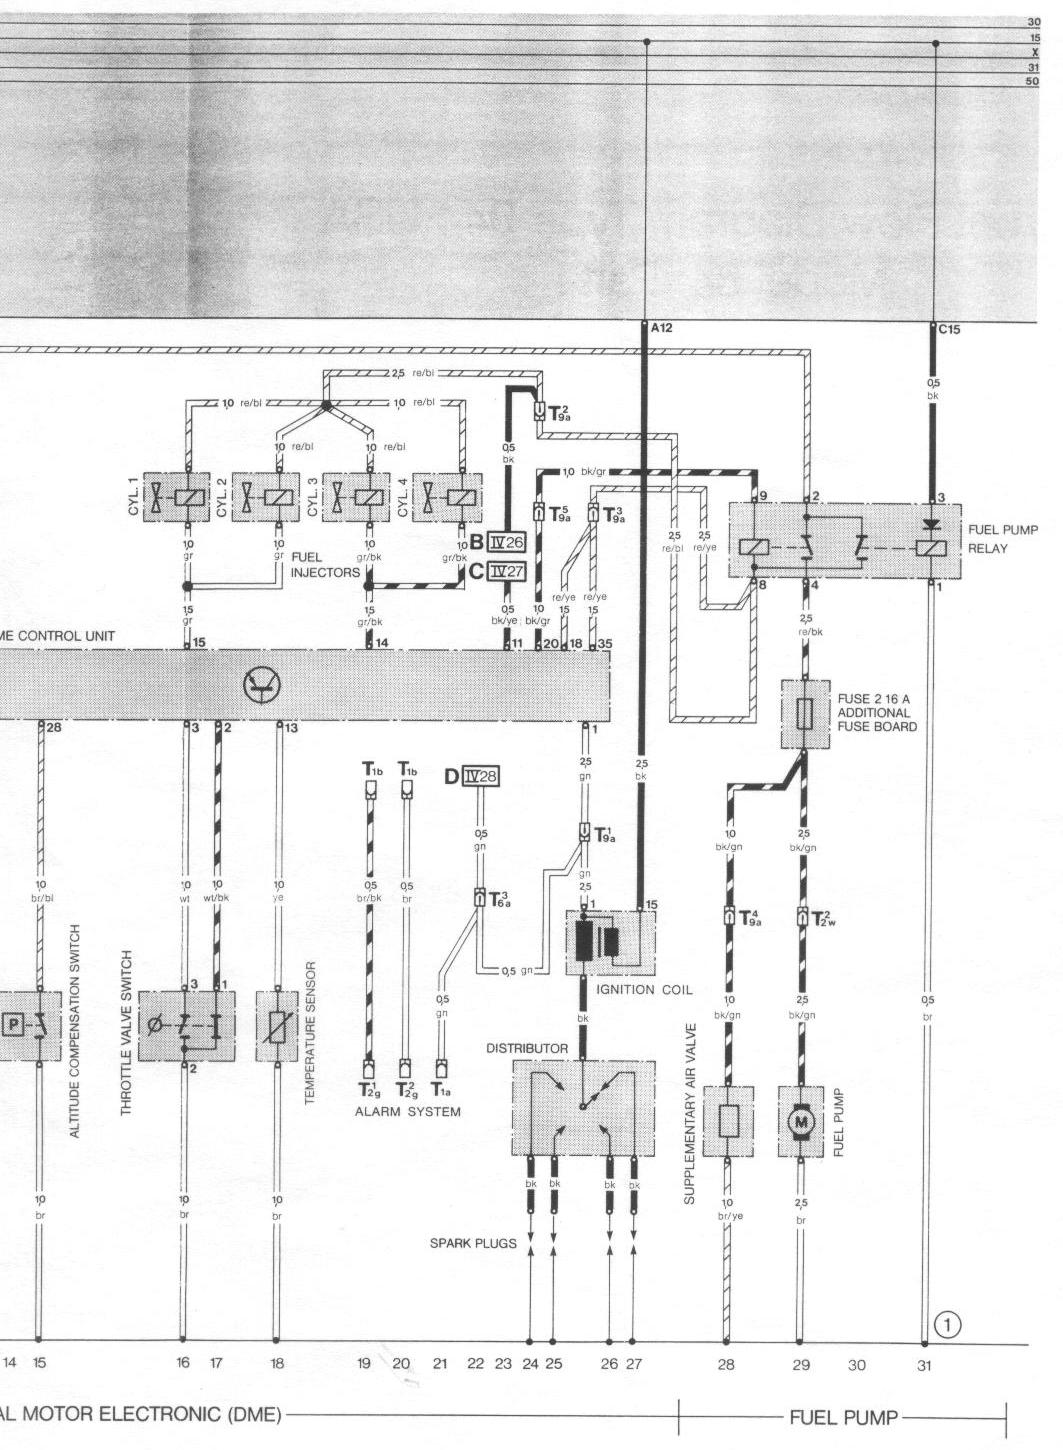 944_84_1_2 fuel pump relay wiring diagram rennlist porsche discussion forums fuel pump wiring schematic 2004 gto at honlapkeszites.co